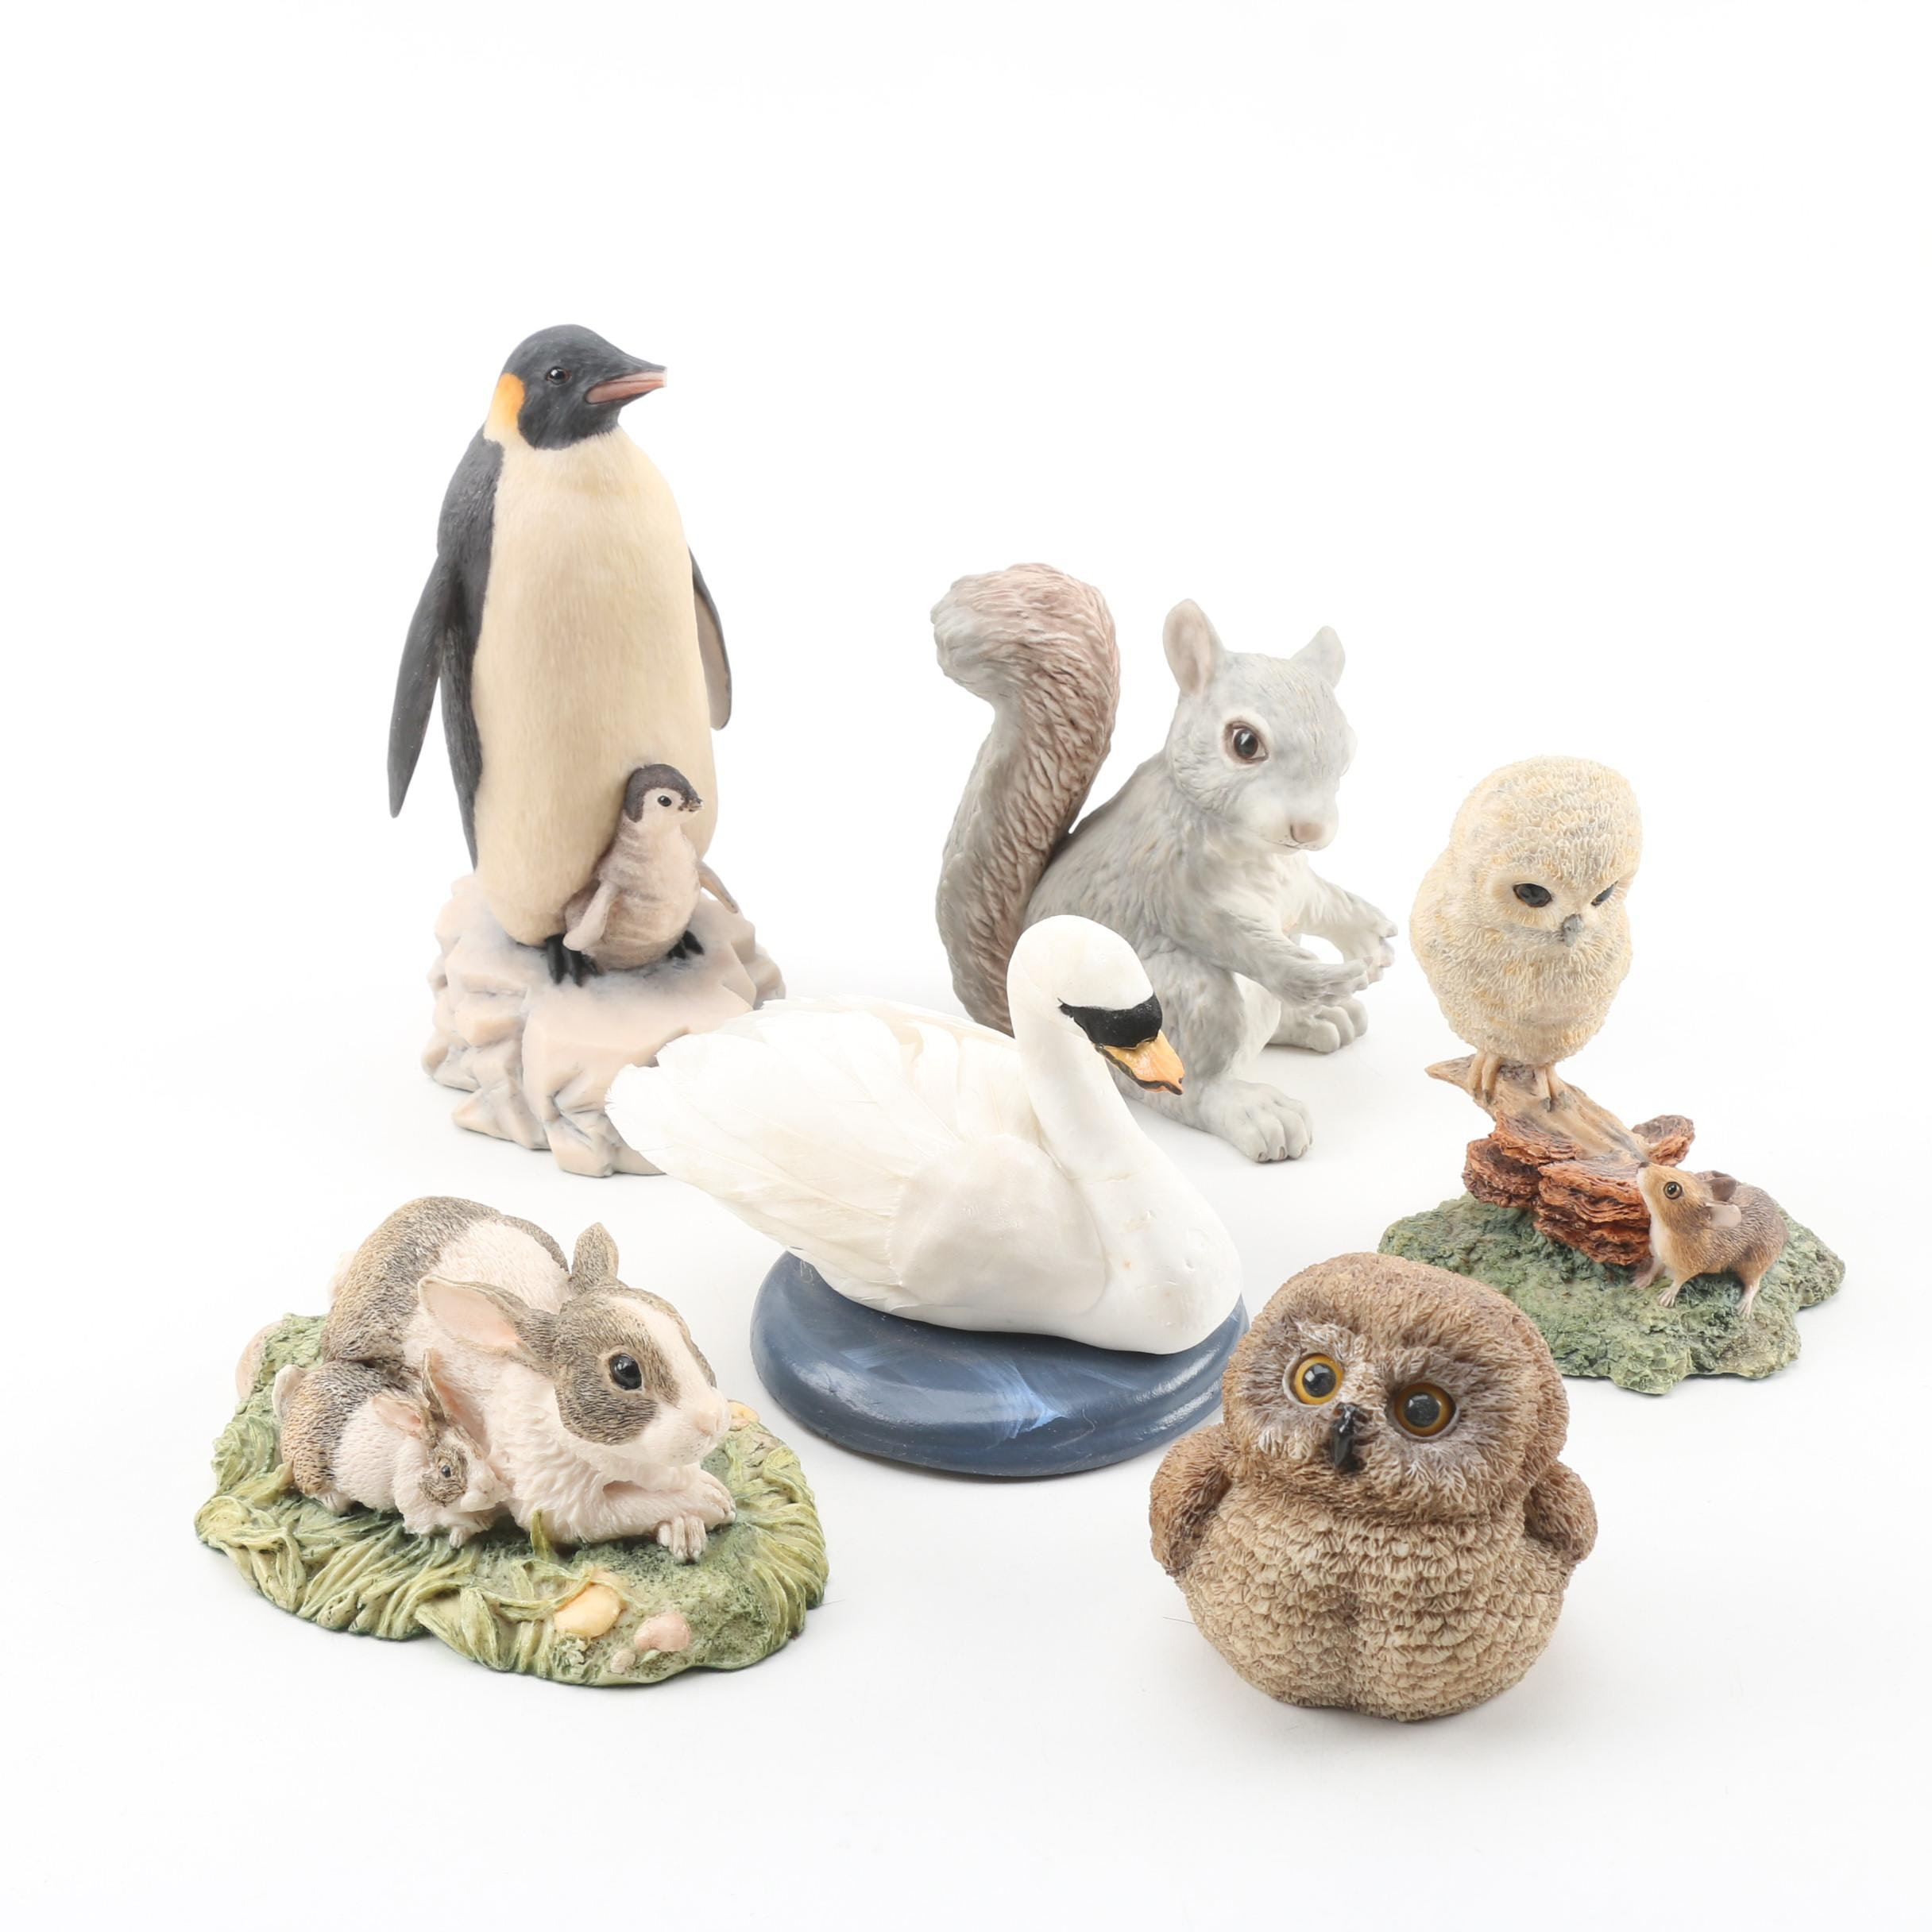 Resin and Ceramic Animal Figurines including Boehm and Byers' Choice